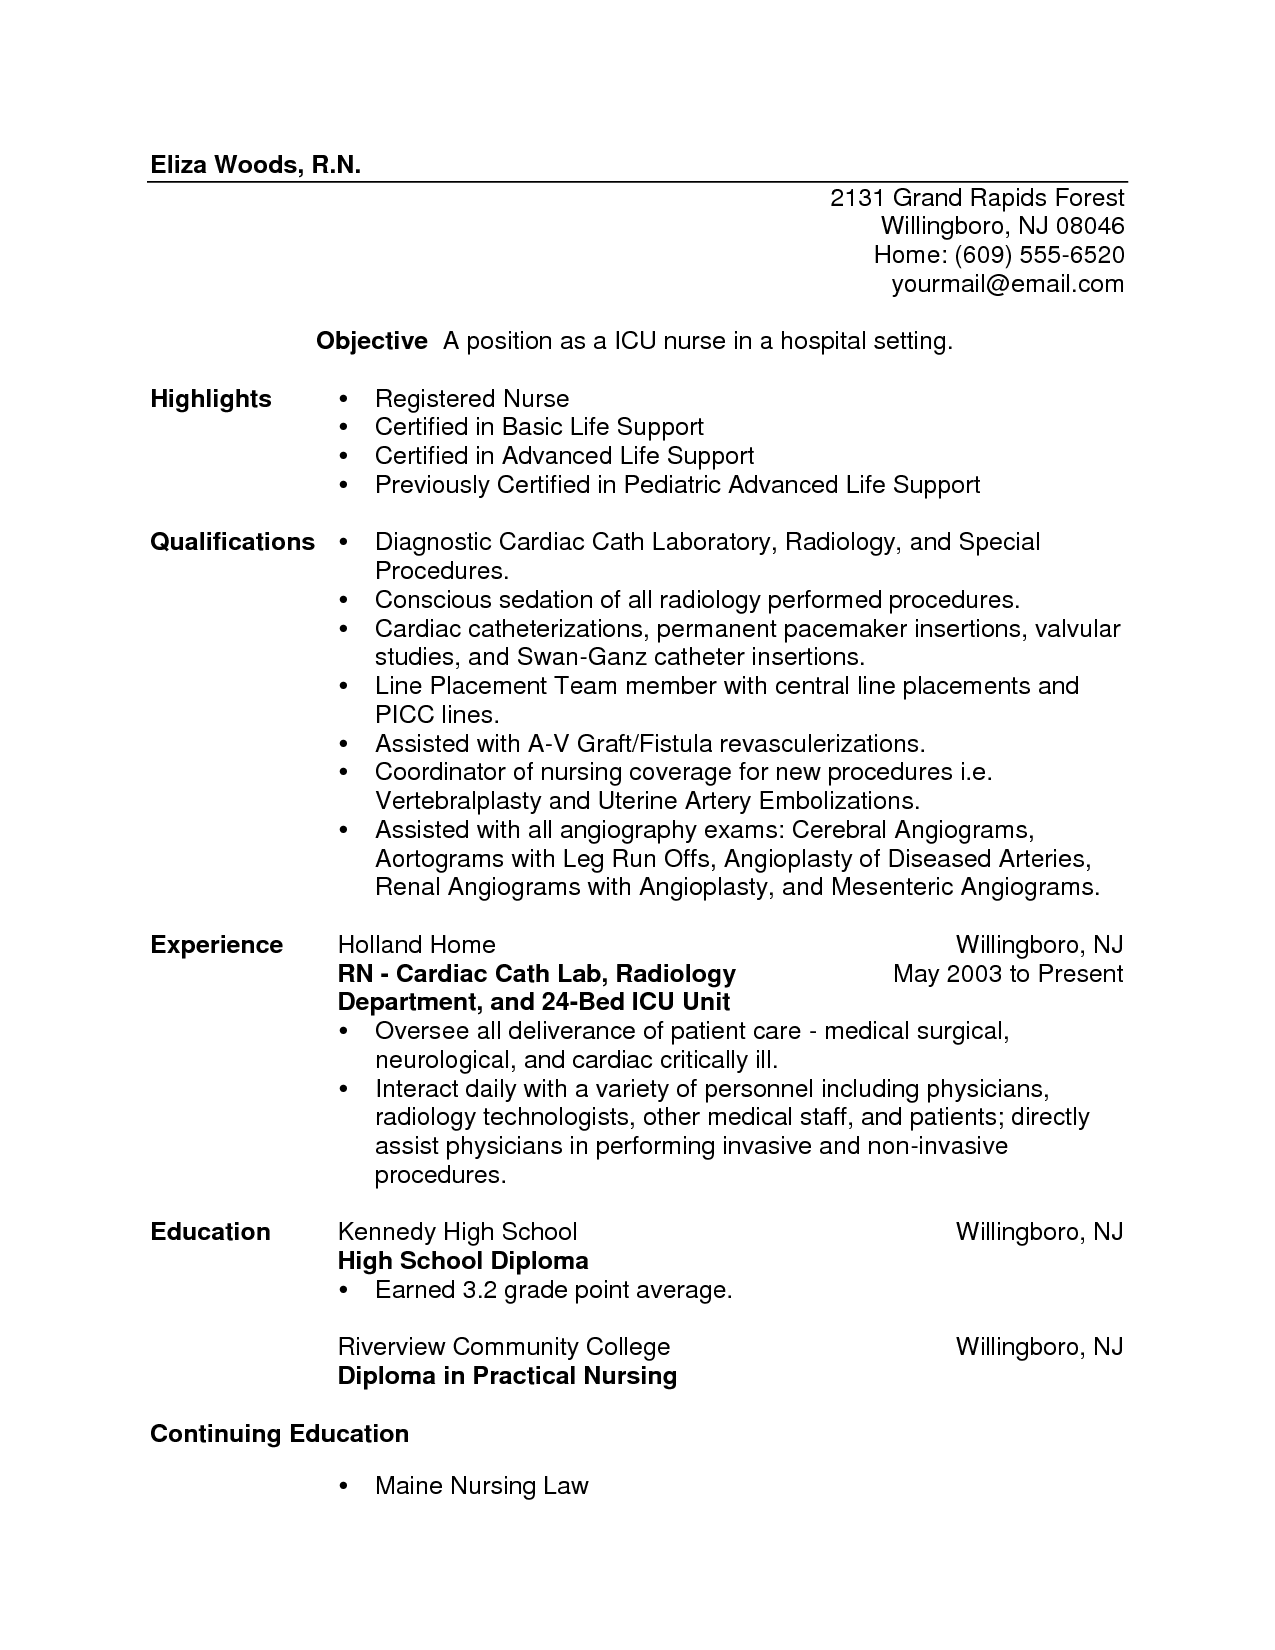 Sample Resume For Nursing Student Classy Nurse Resumes  Nurse Resume Sample New Grad Nursing Resume .